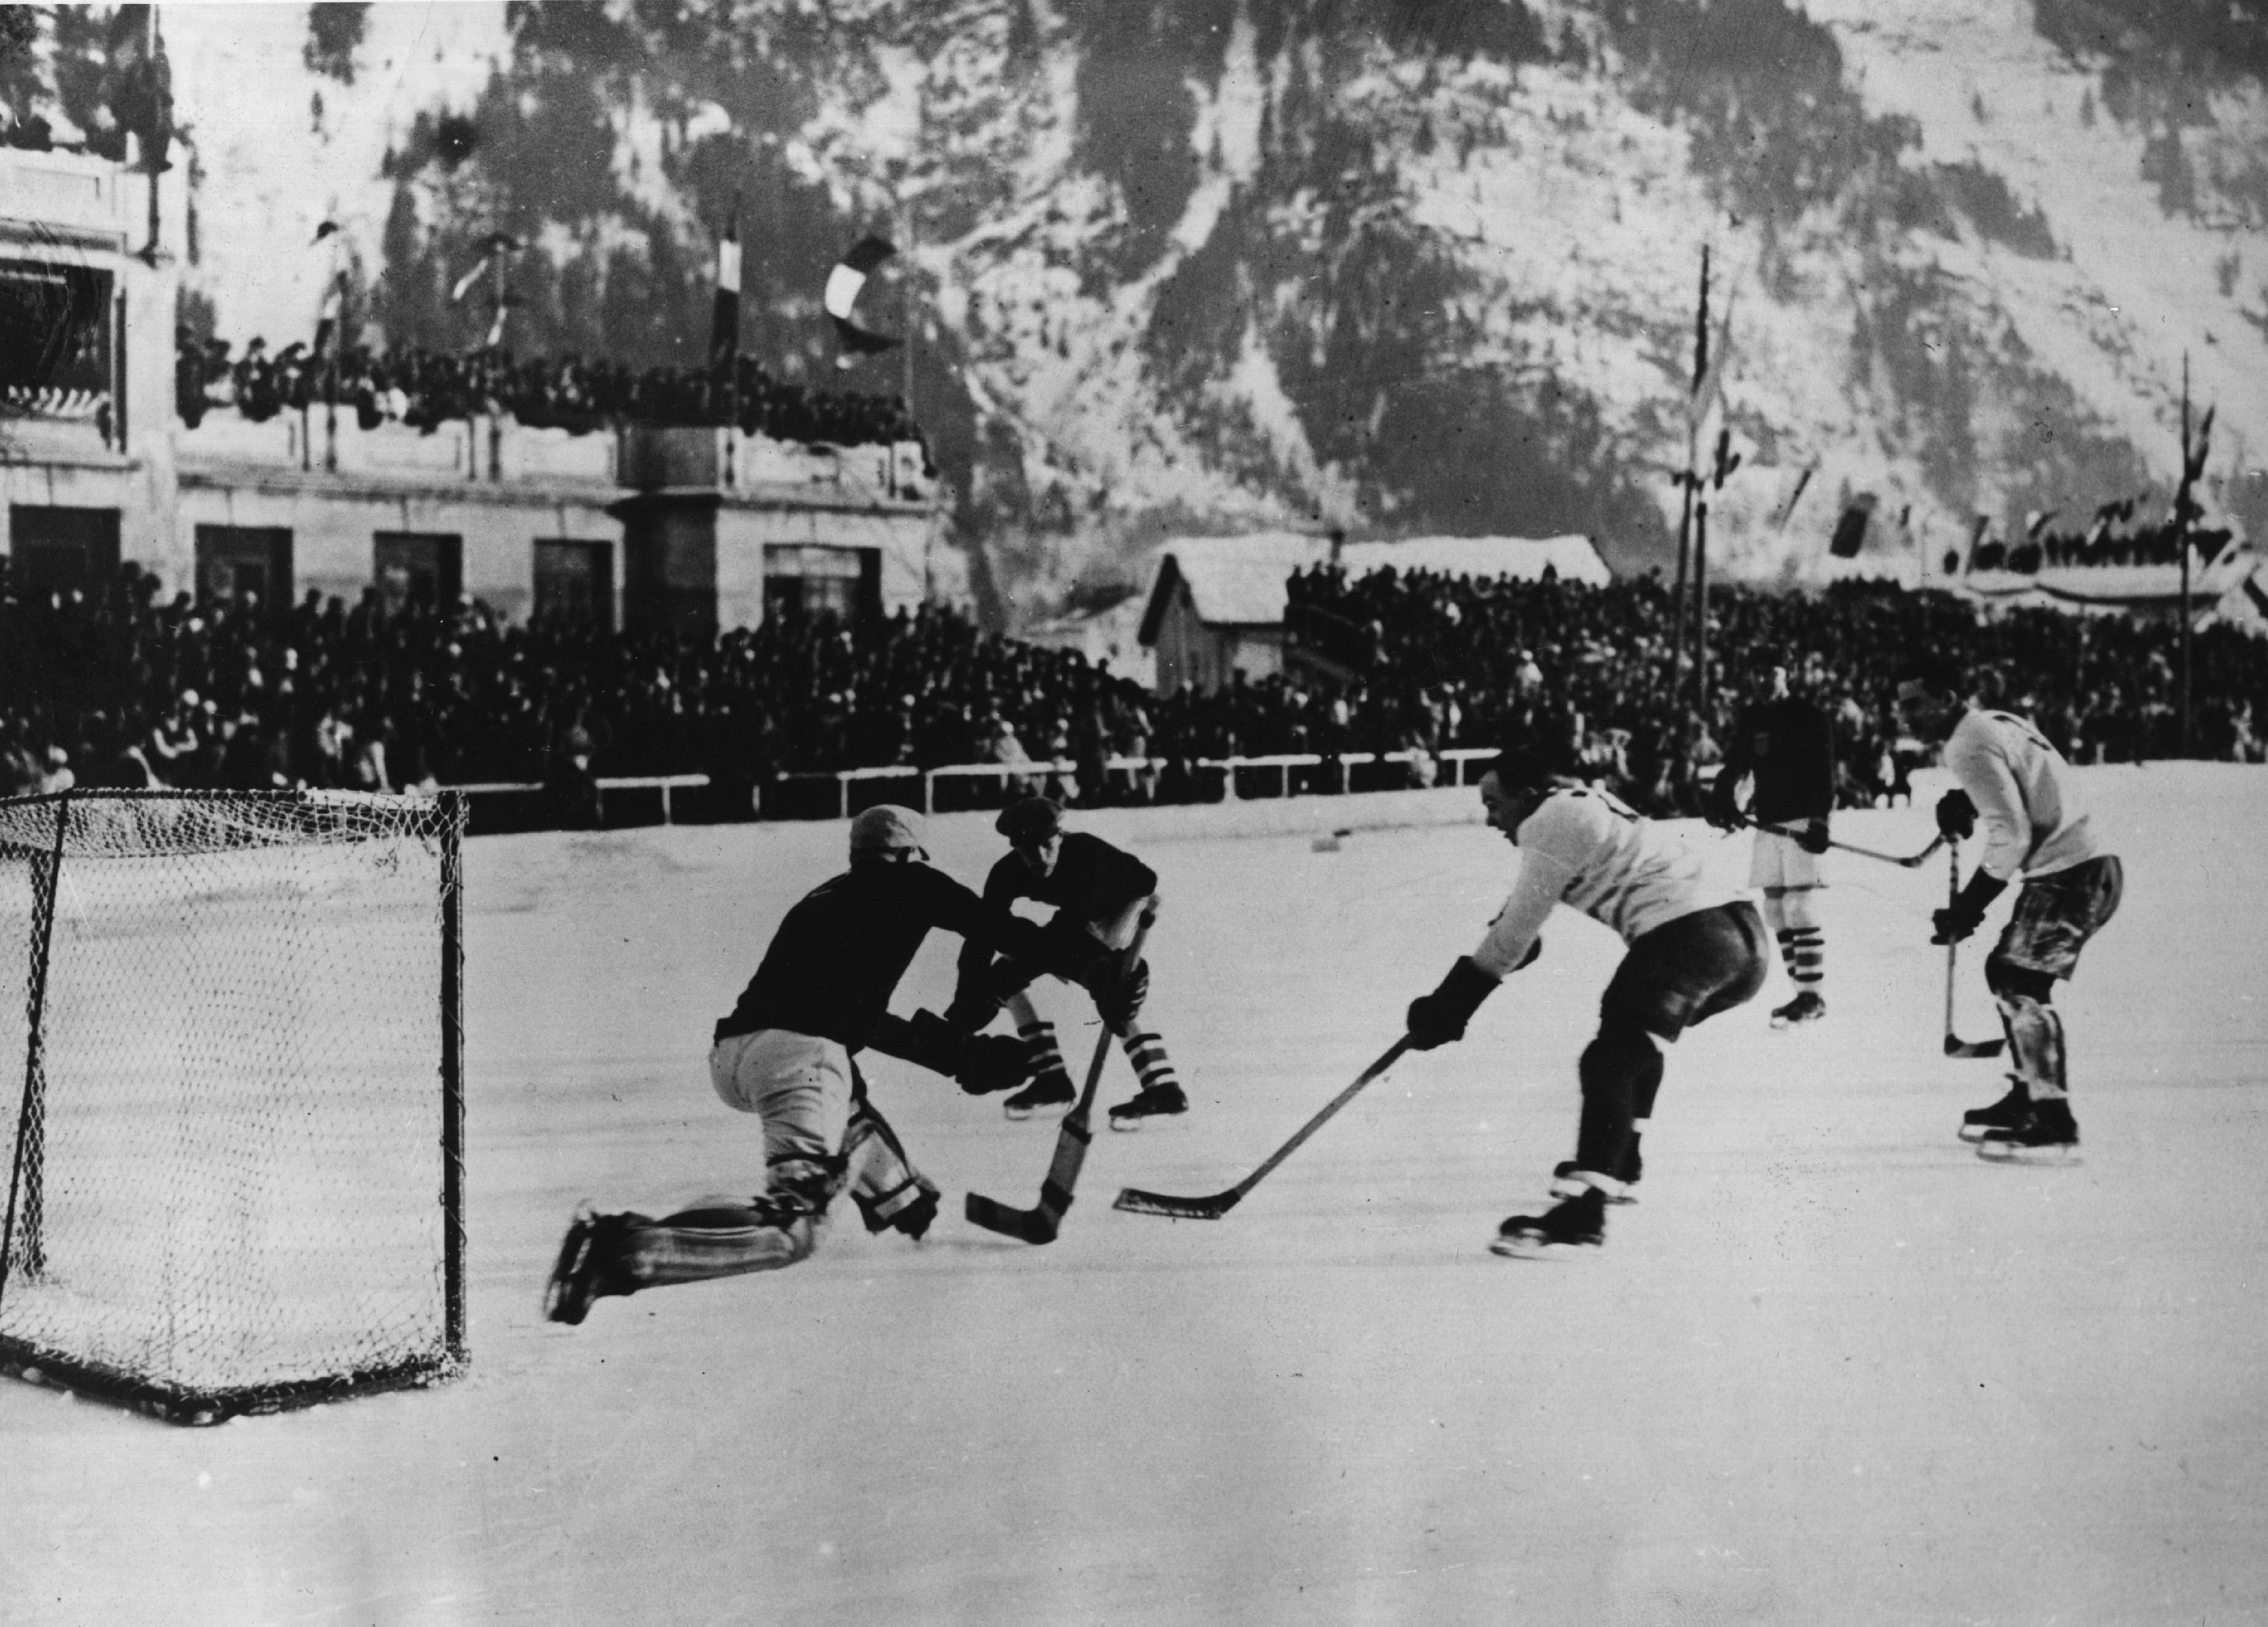 National teams from Canada and the USA in action during an ice hockey match at the first Winter Olympics at Chamonix in 1924.